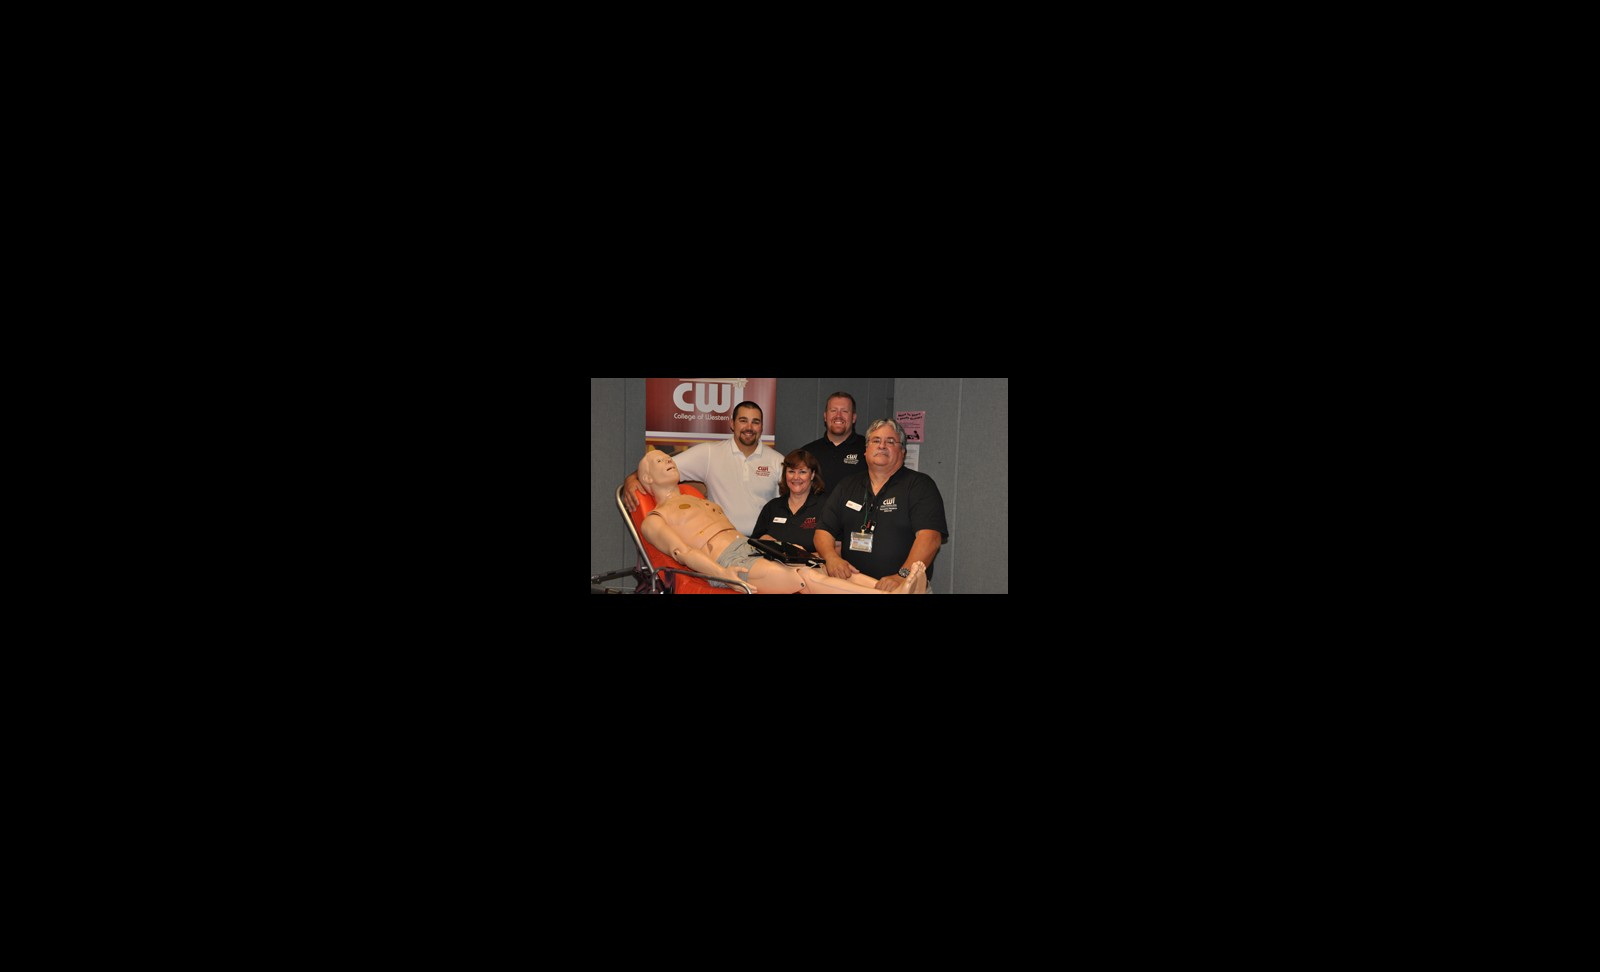 Title - Members of the CWI Paramedic program pose with a simulation manikin that was purchased through a grant.